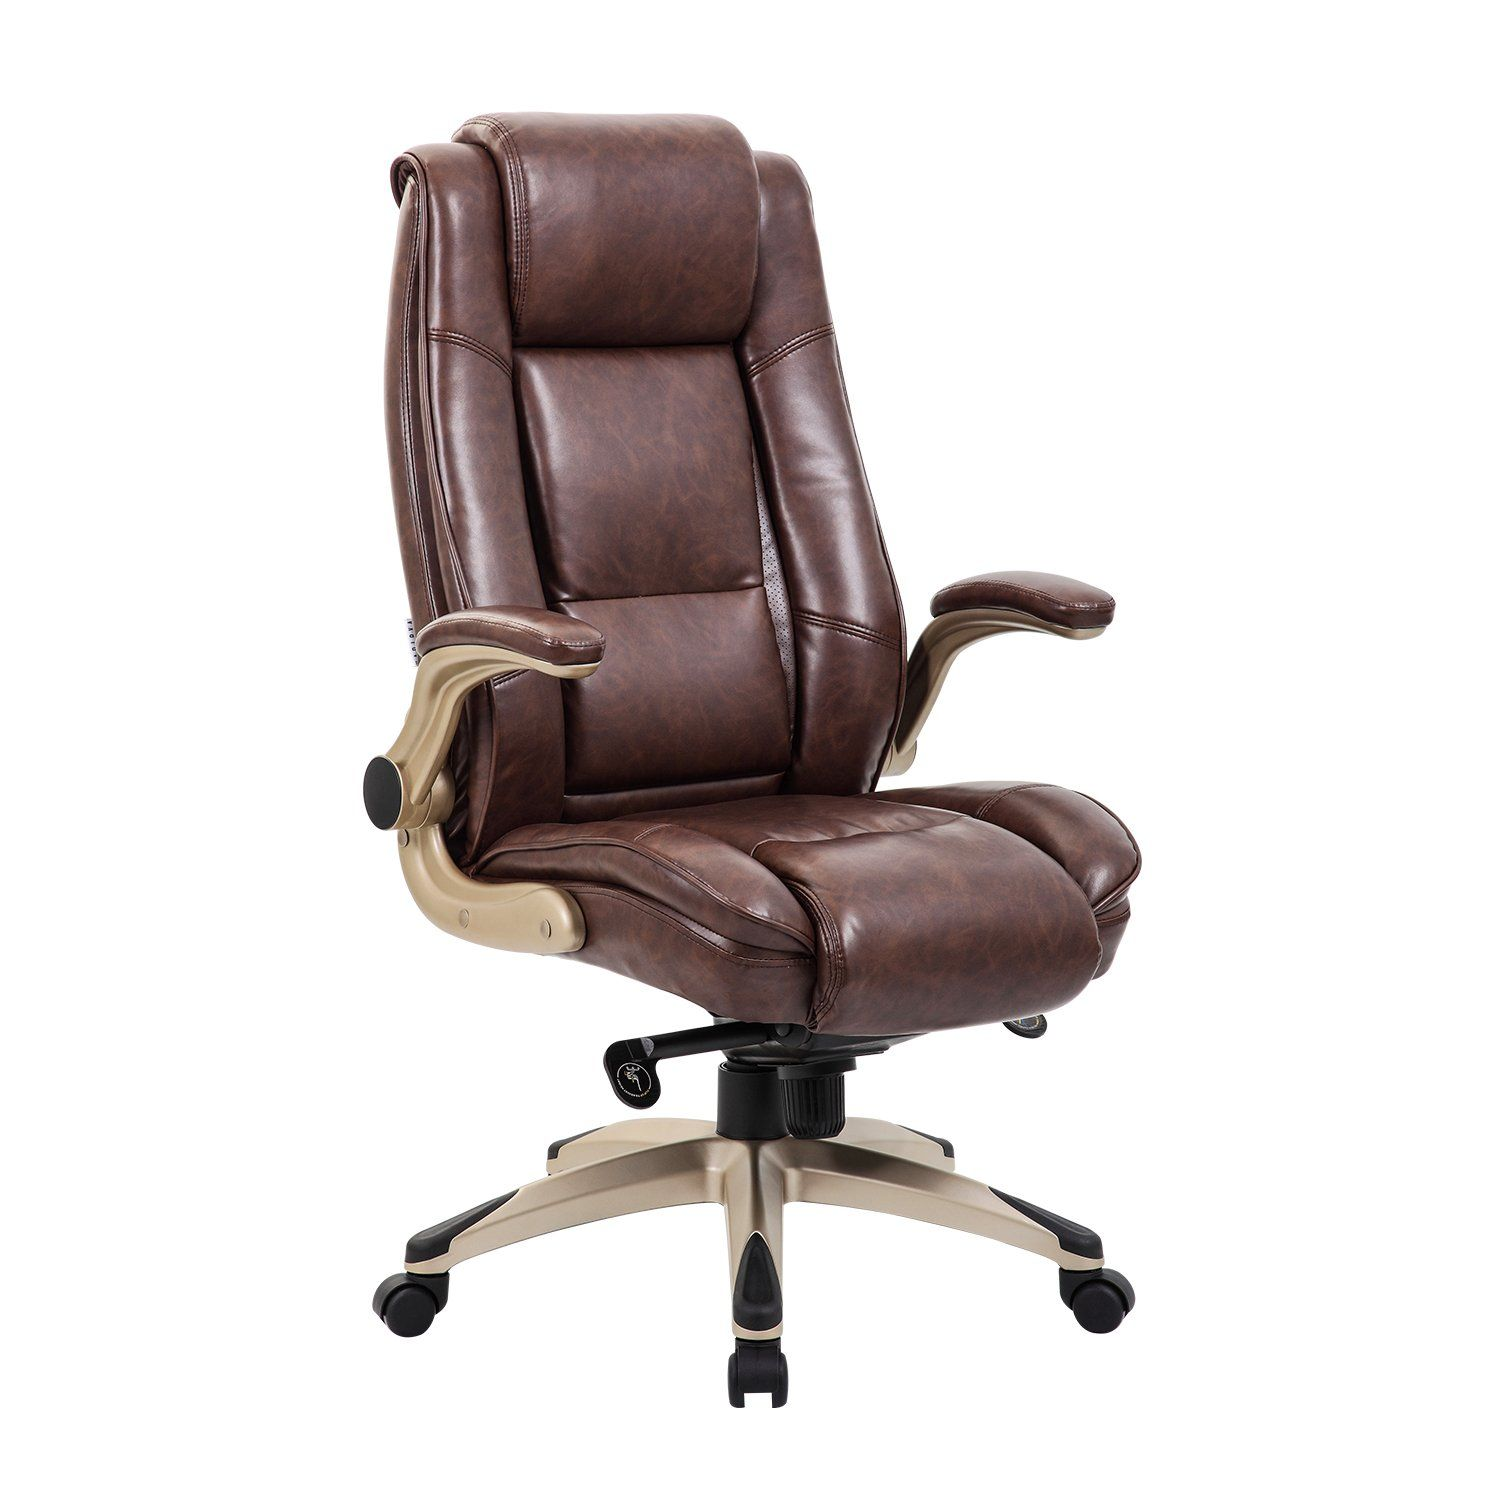 Lch high back leather office chair executive computer desk chair with adjustable angle recline locking